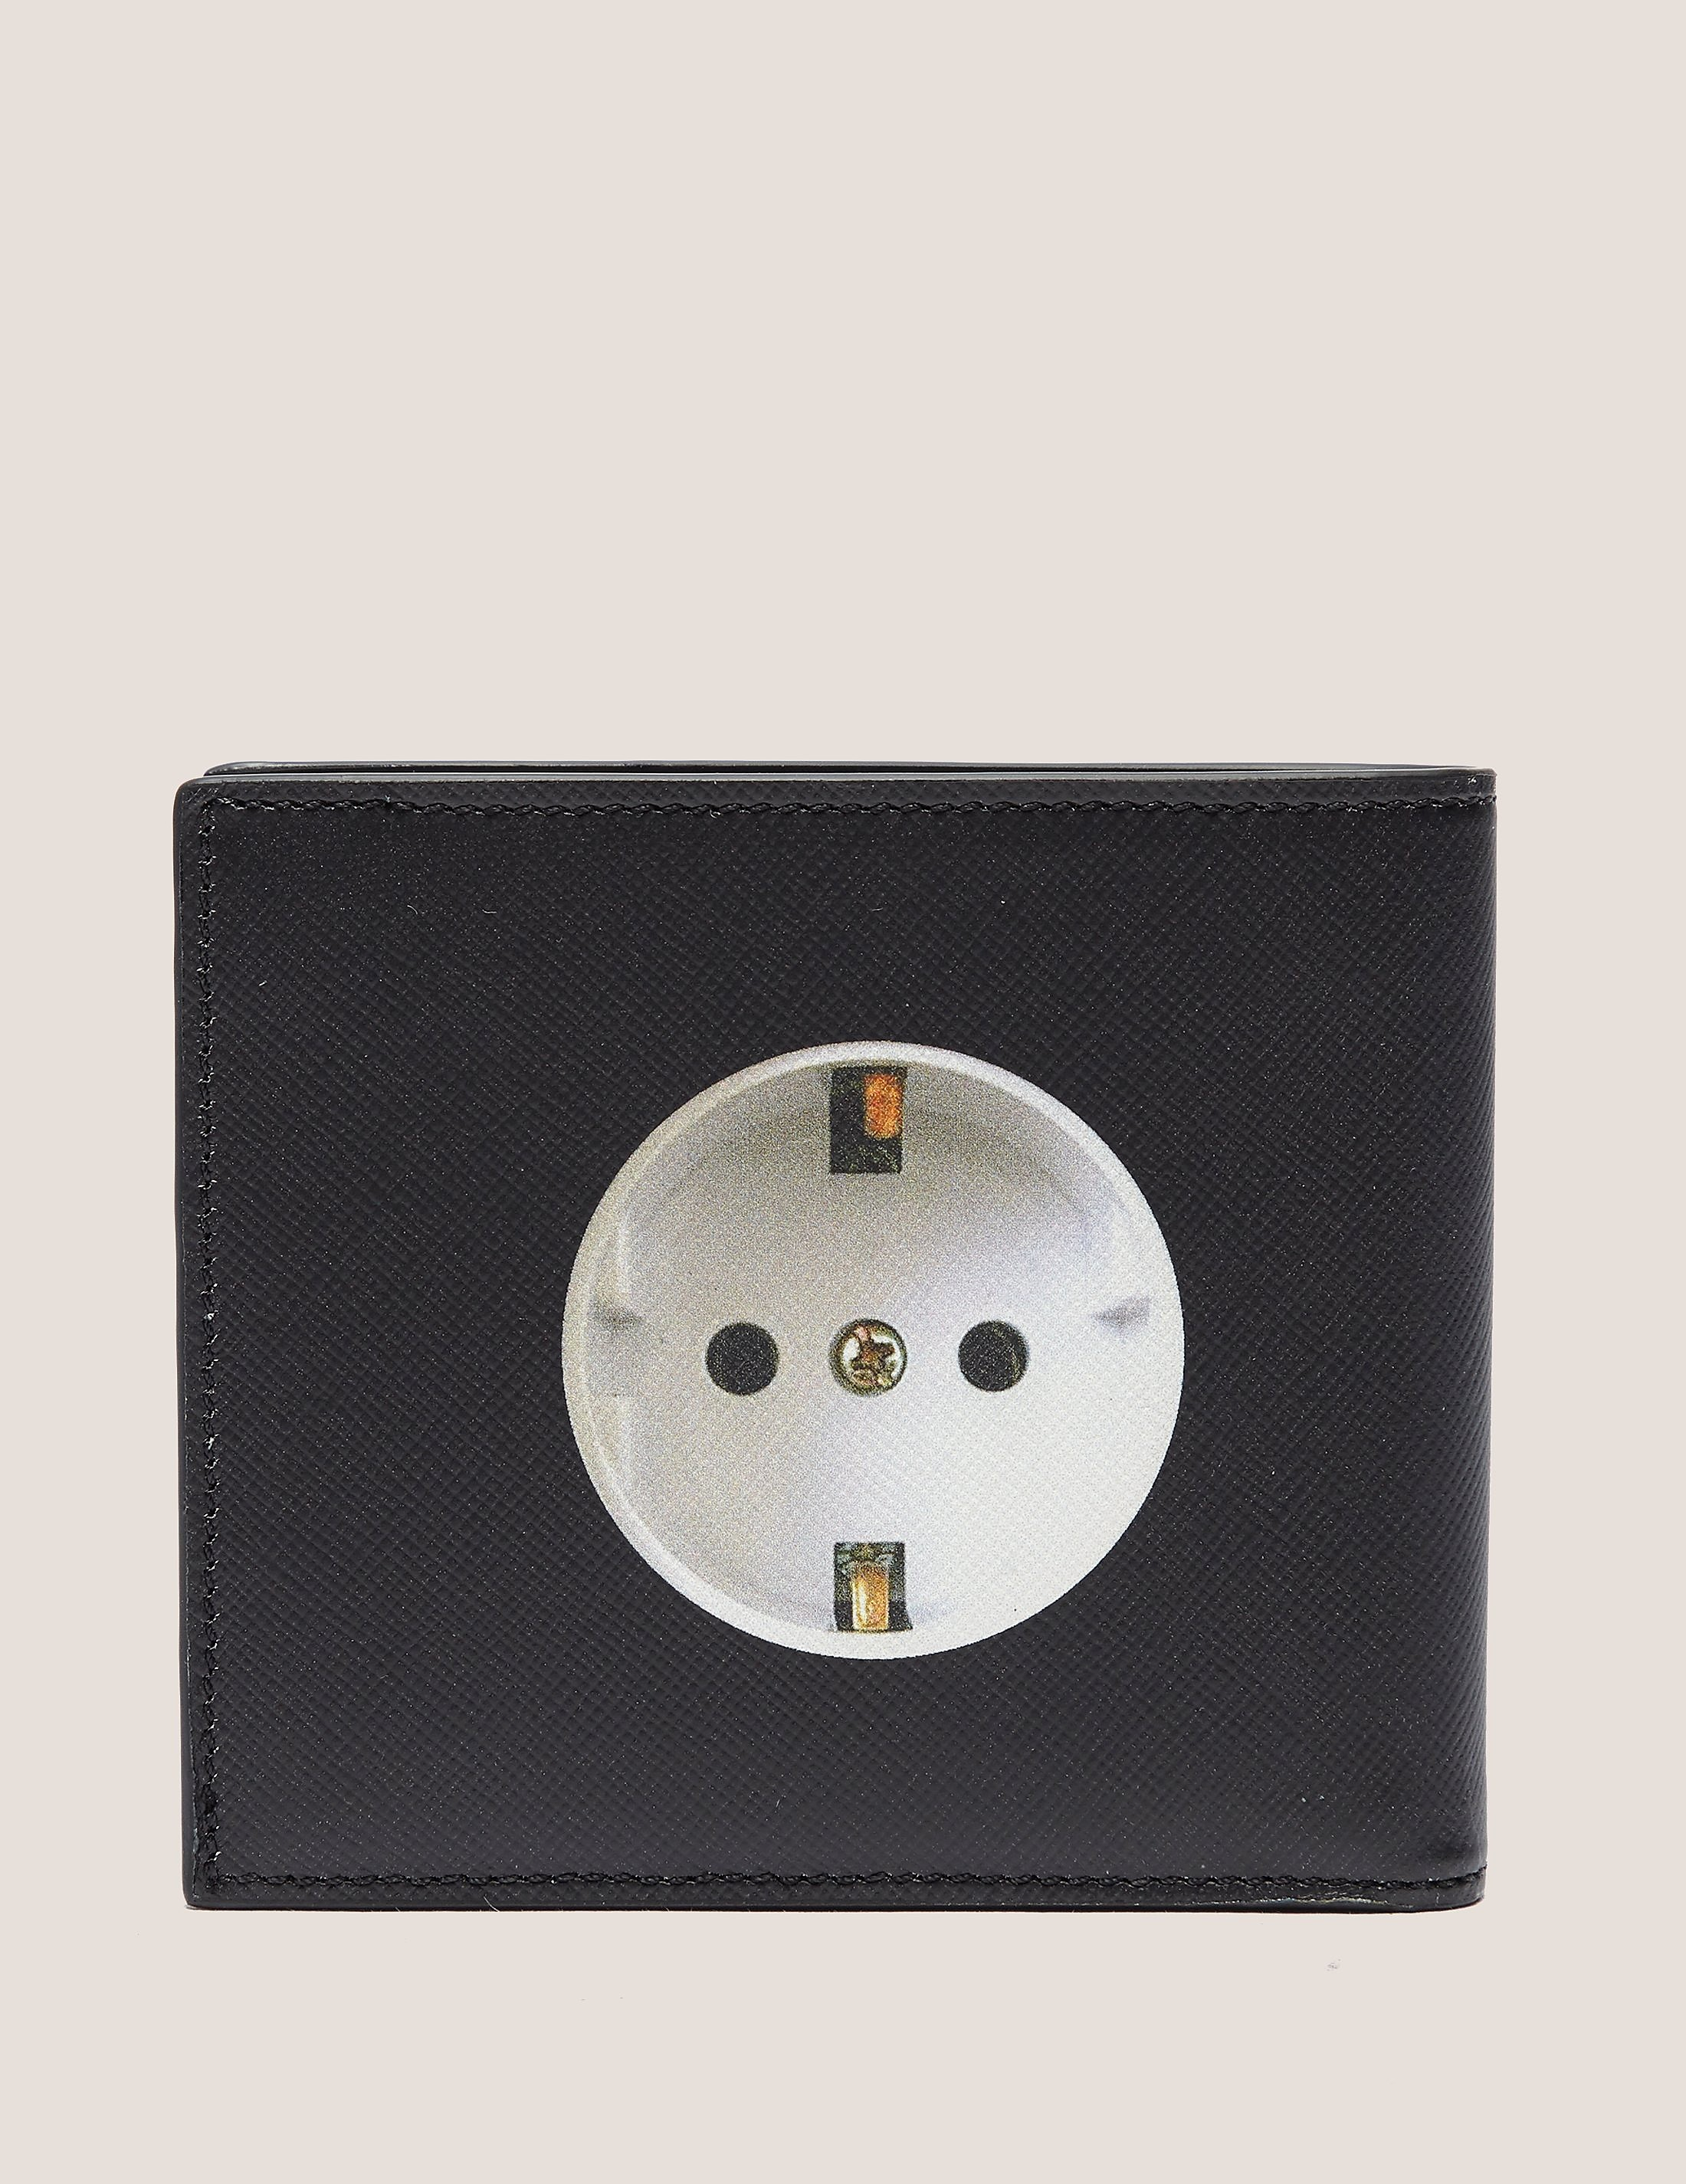 Paul Smith Plug Socket Billfold Wallet